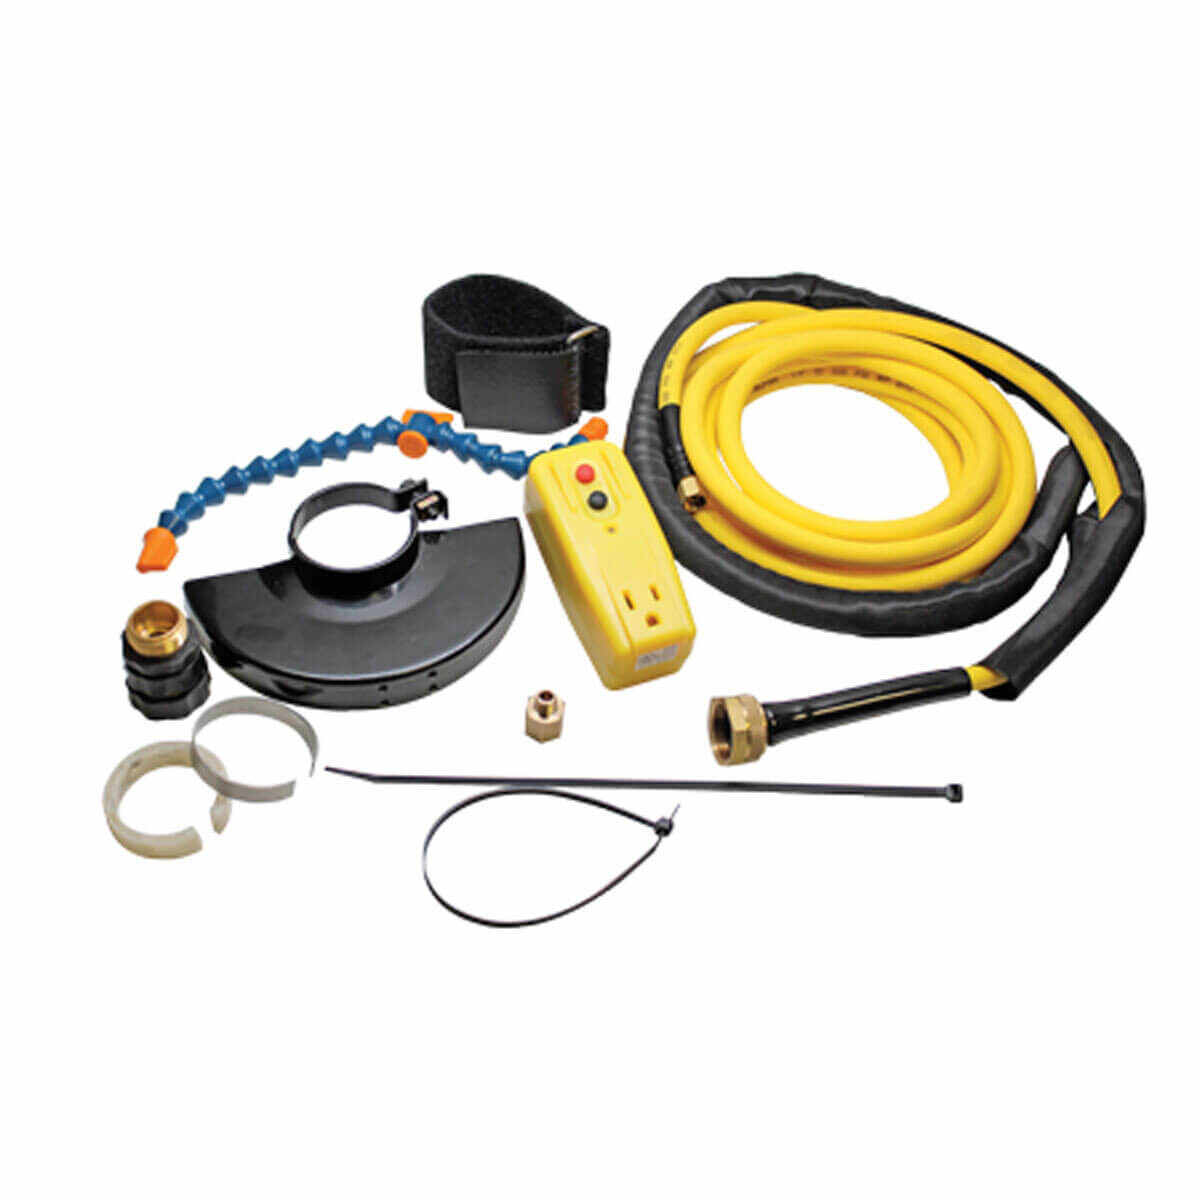 WBCKIT Alpha Tools Wet Blade Cutting Kit for Angle Grinders